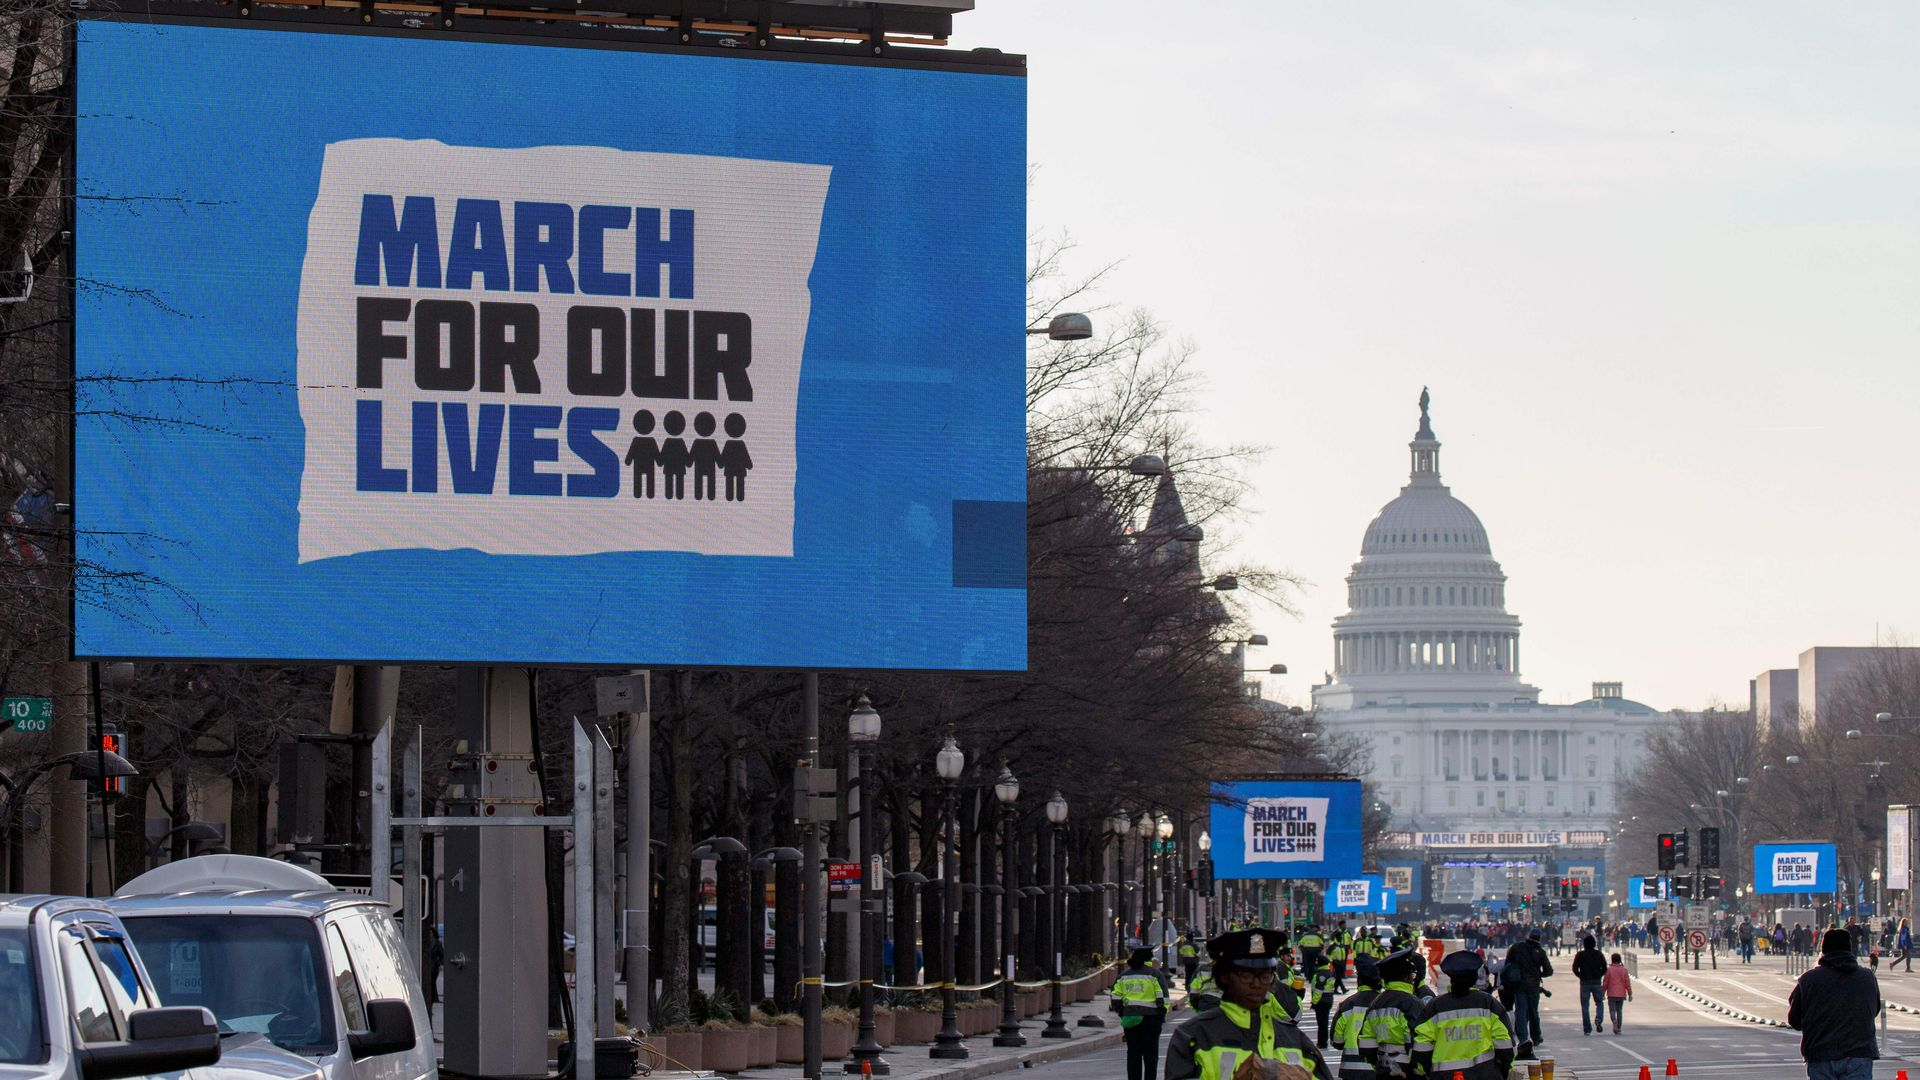 People arrive early for the March For Our Lives rally against gun violence in Washington, DC.